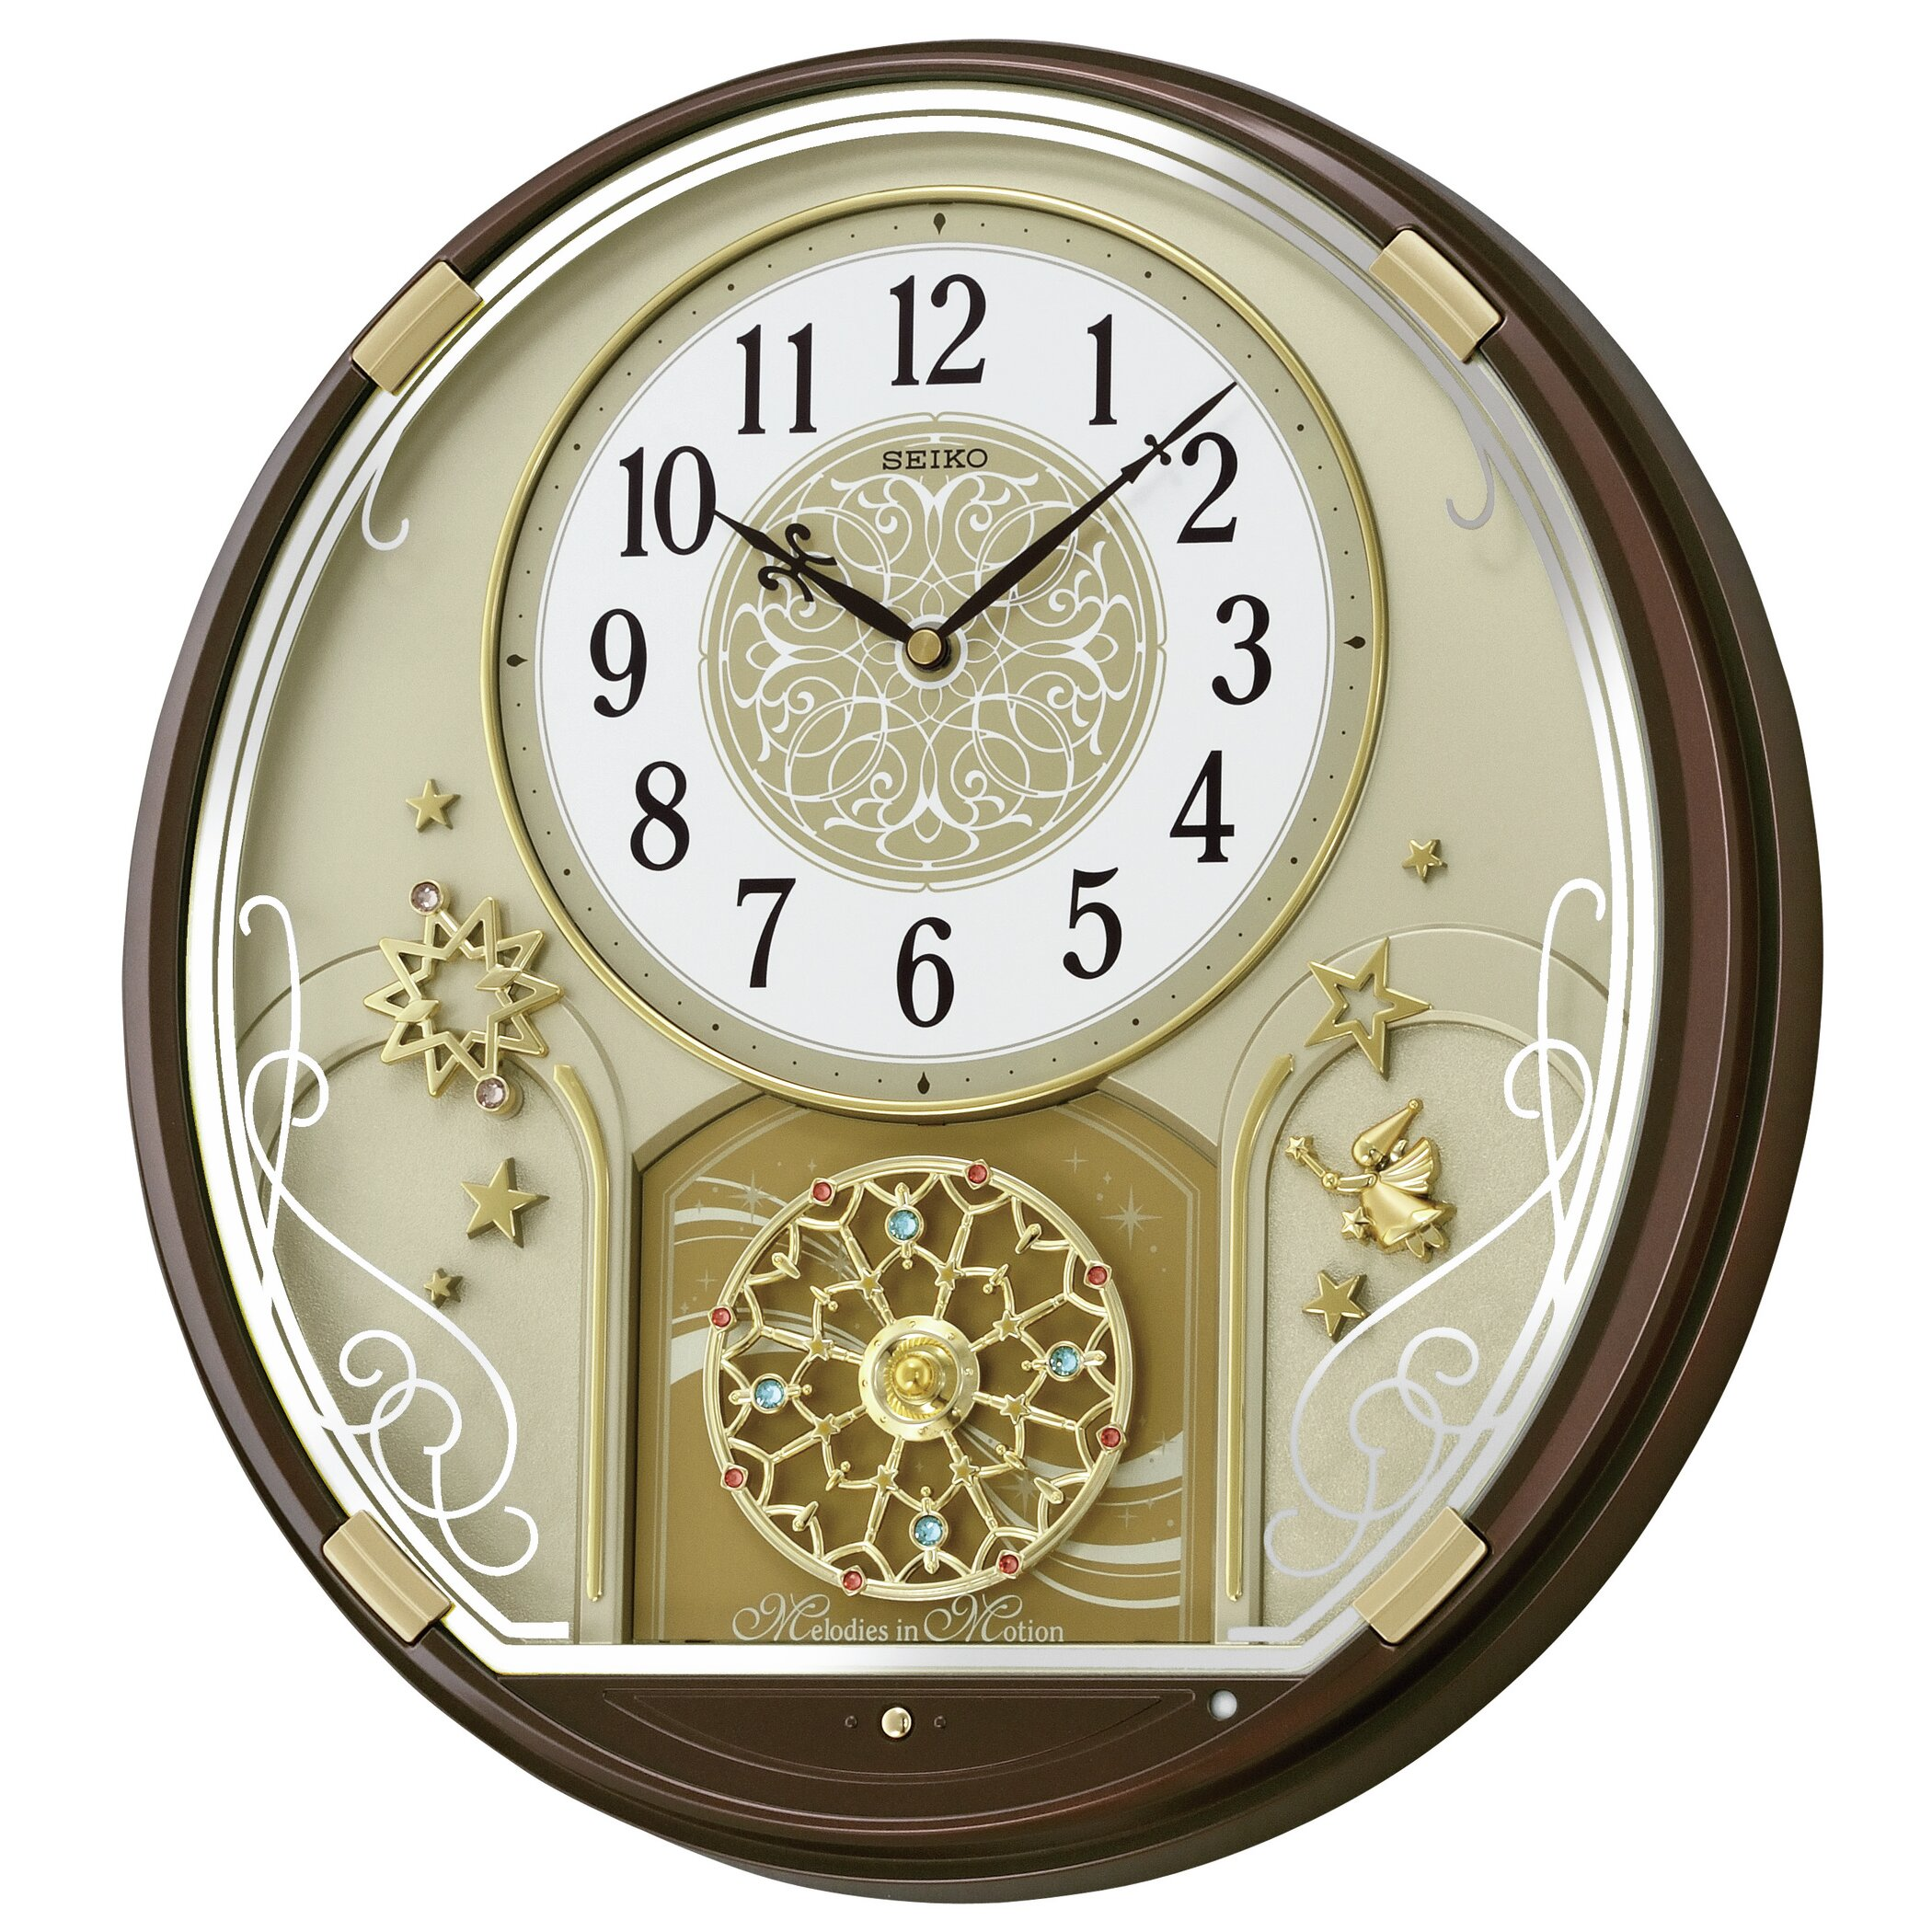 seiko melodies in motion starry night musical wall clock